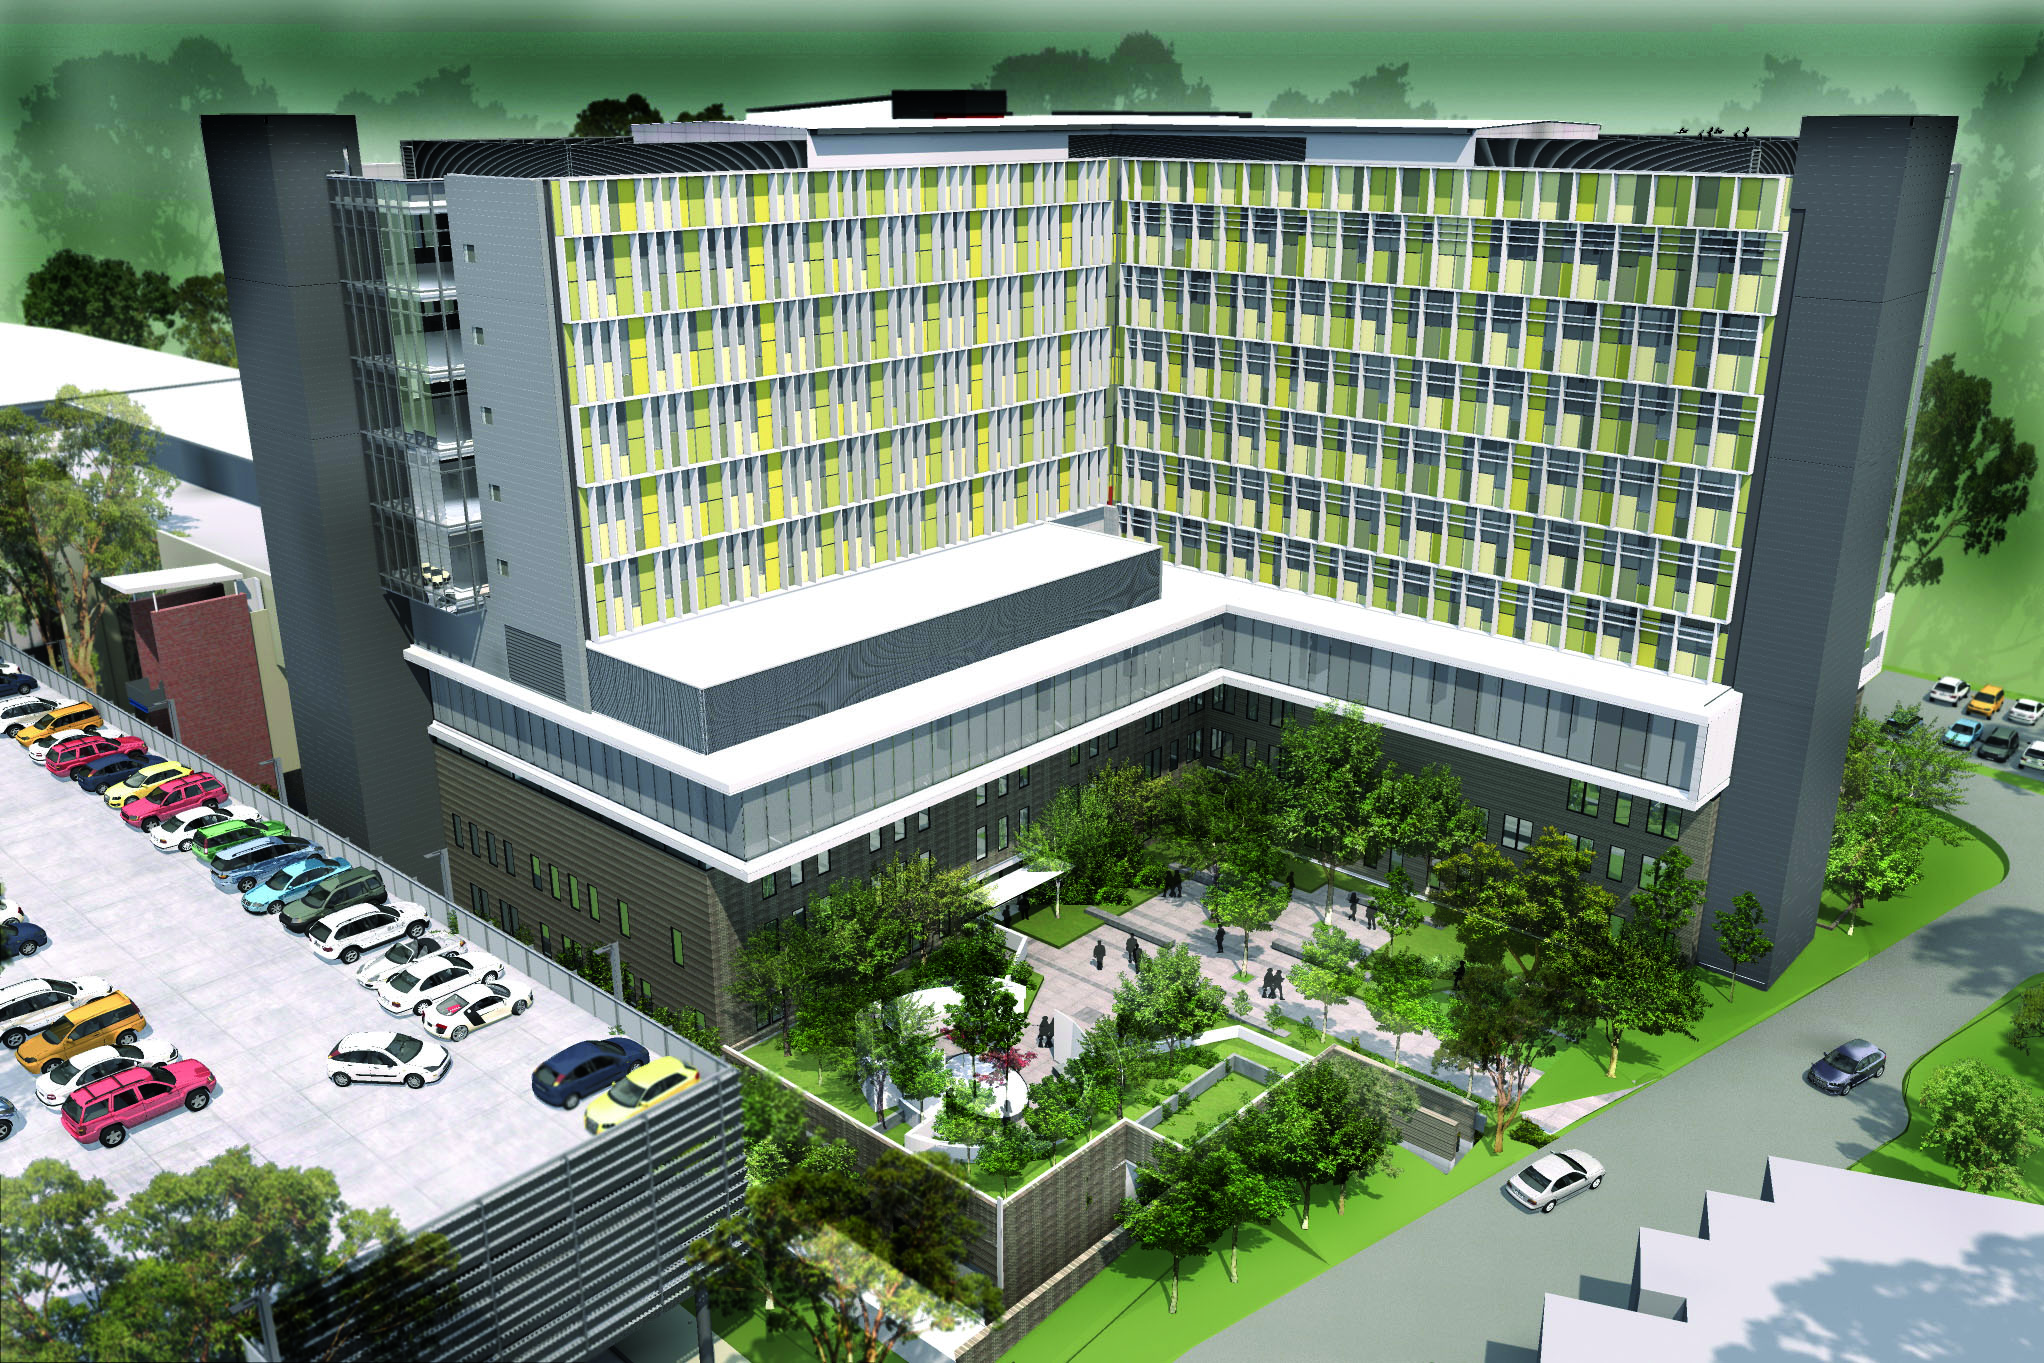 San redevelopment ushers in new era of healthcare